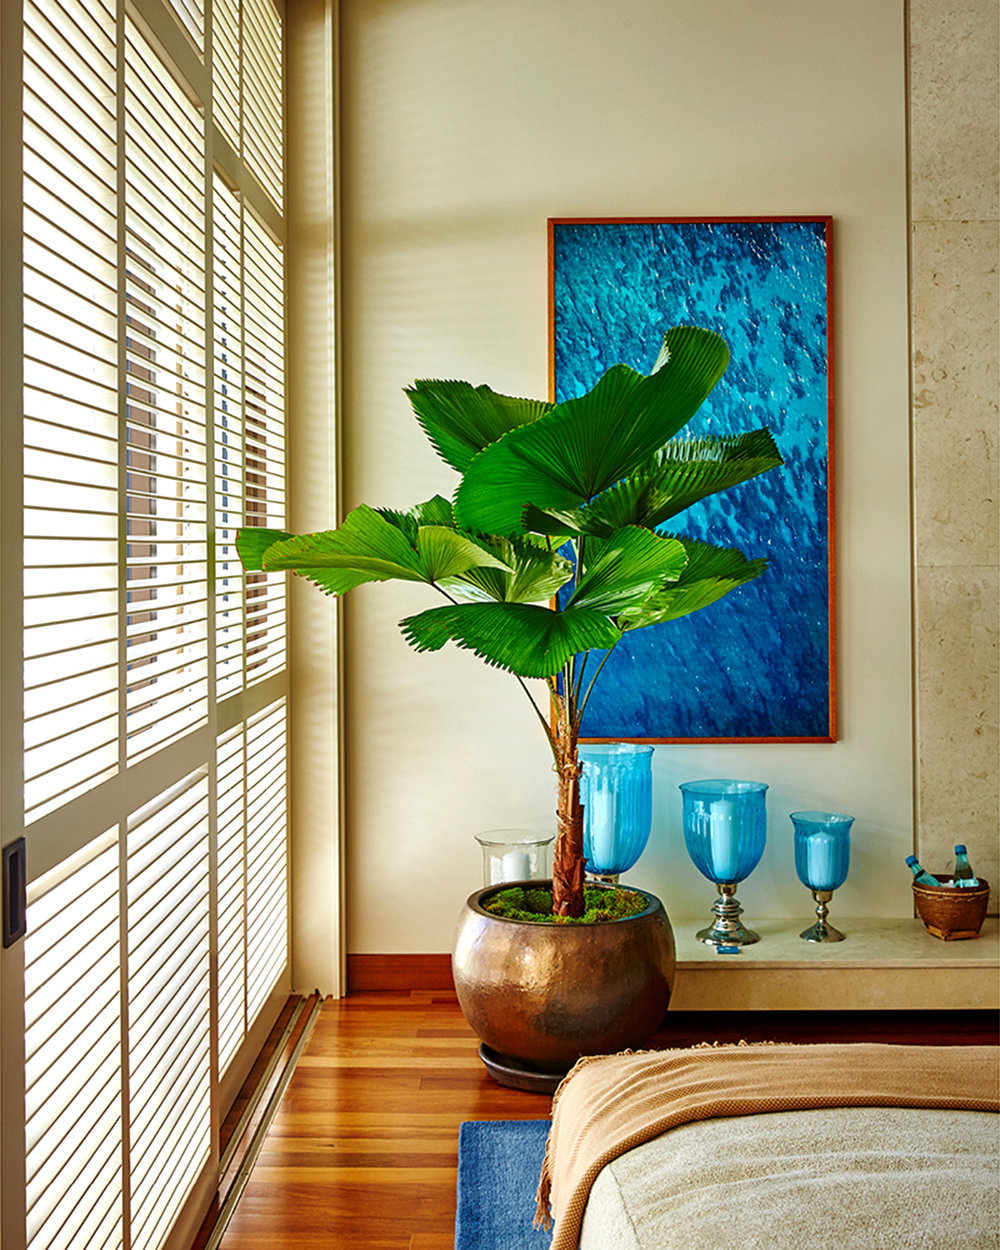 THE ORCHID SUITE AT HALEKULANI